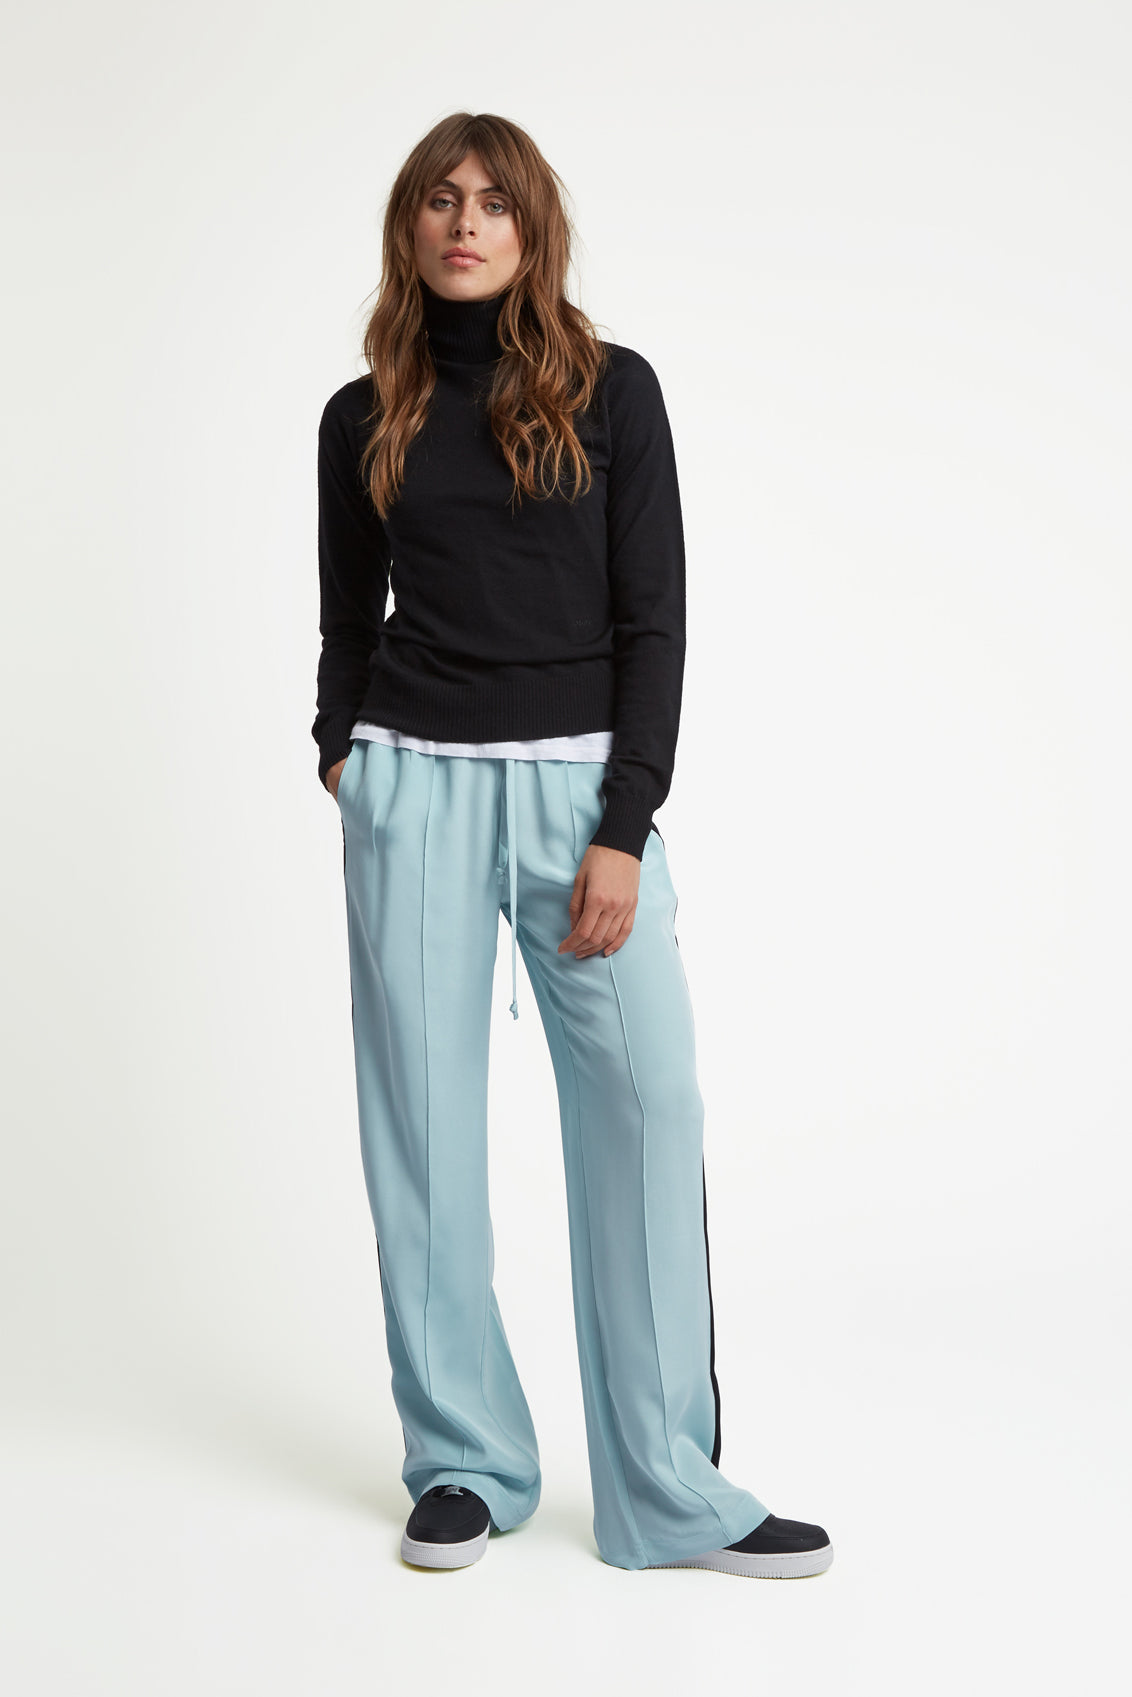 The Classic Jogger - Sky Blue & Black Silk - SERENA BUTE